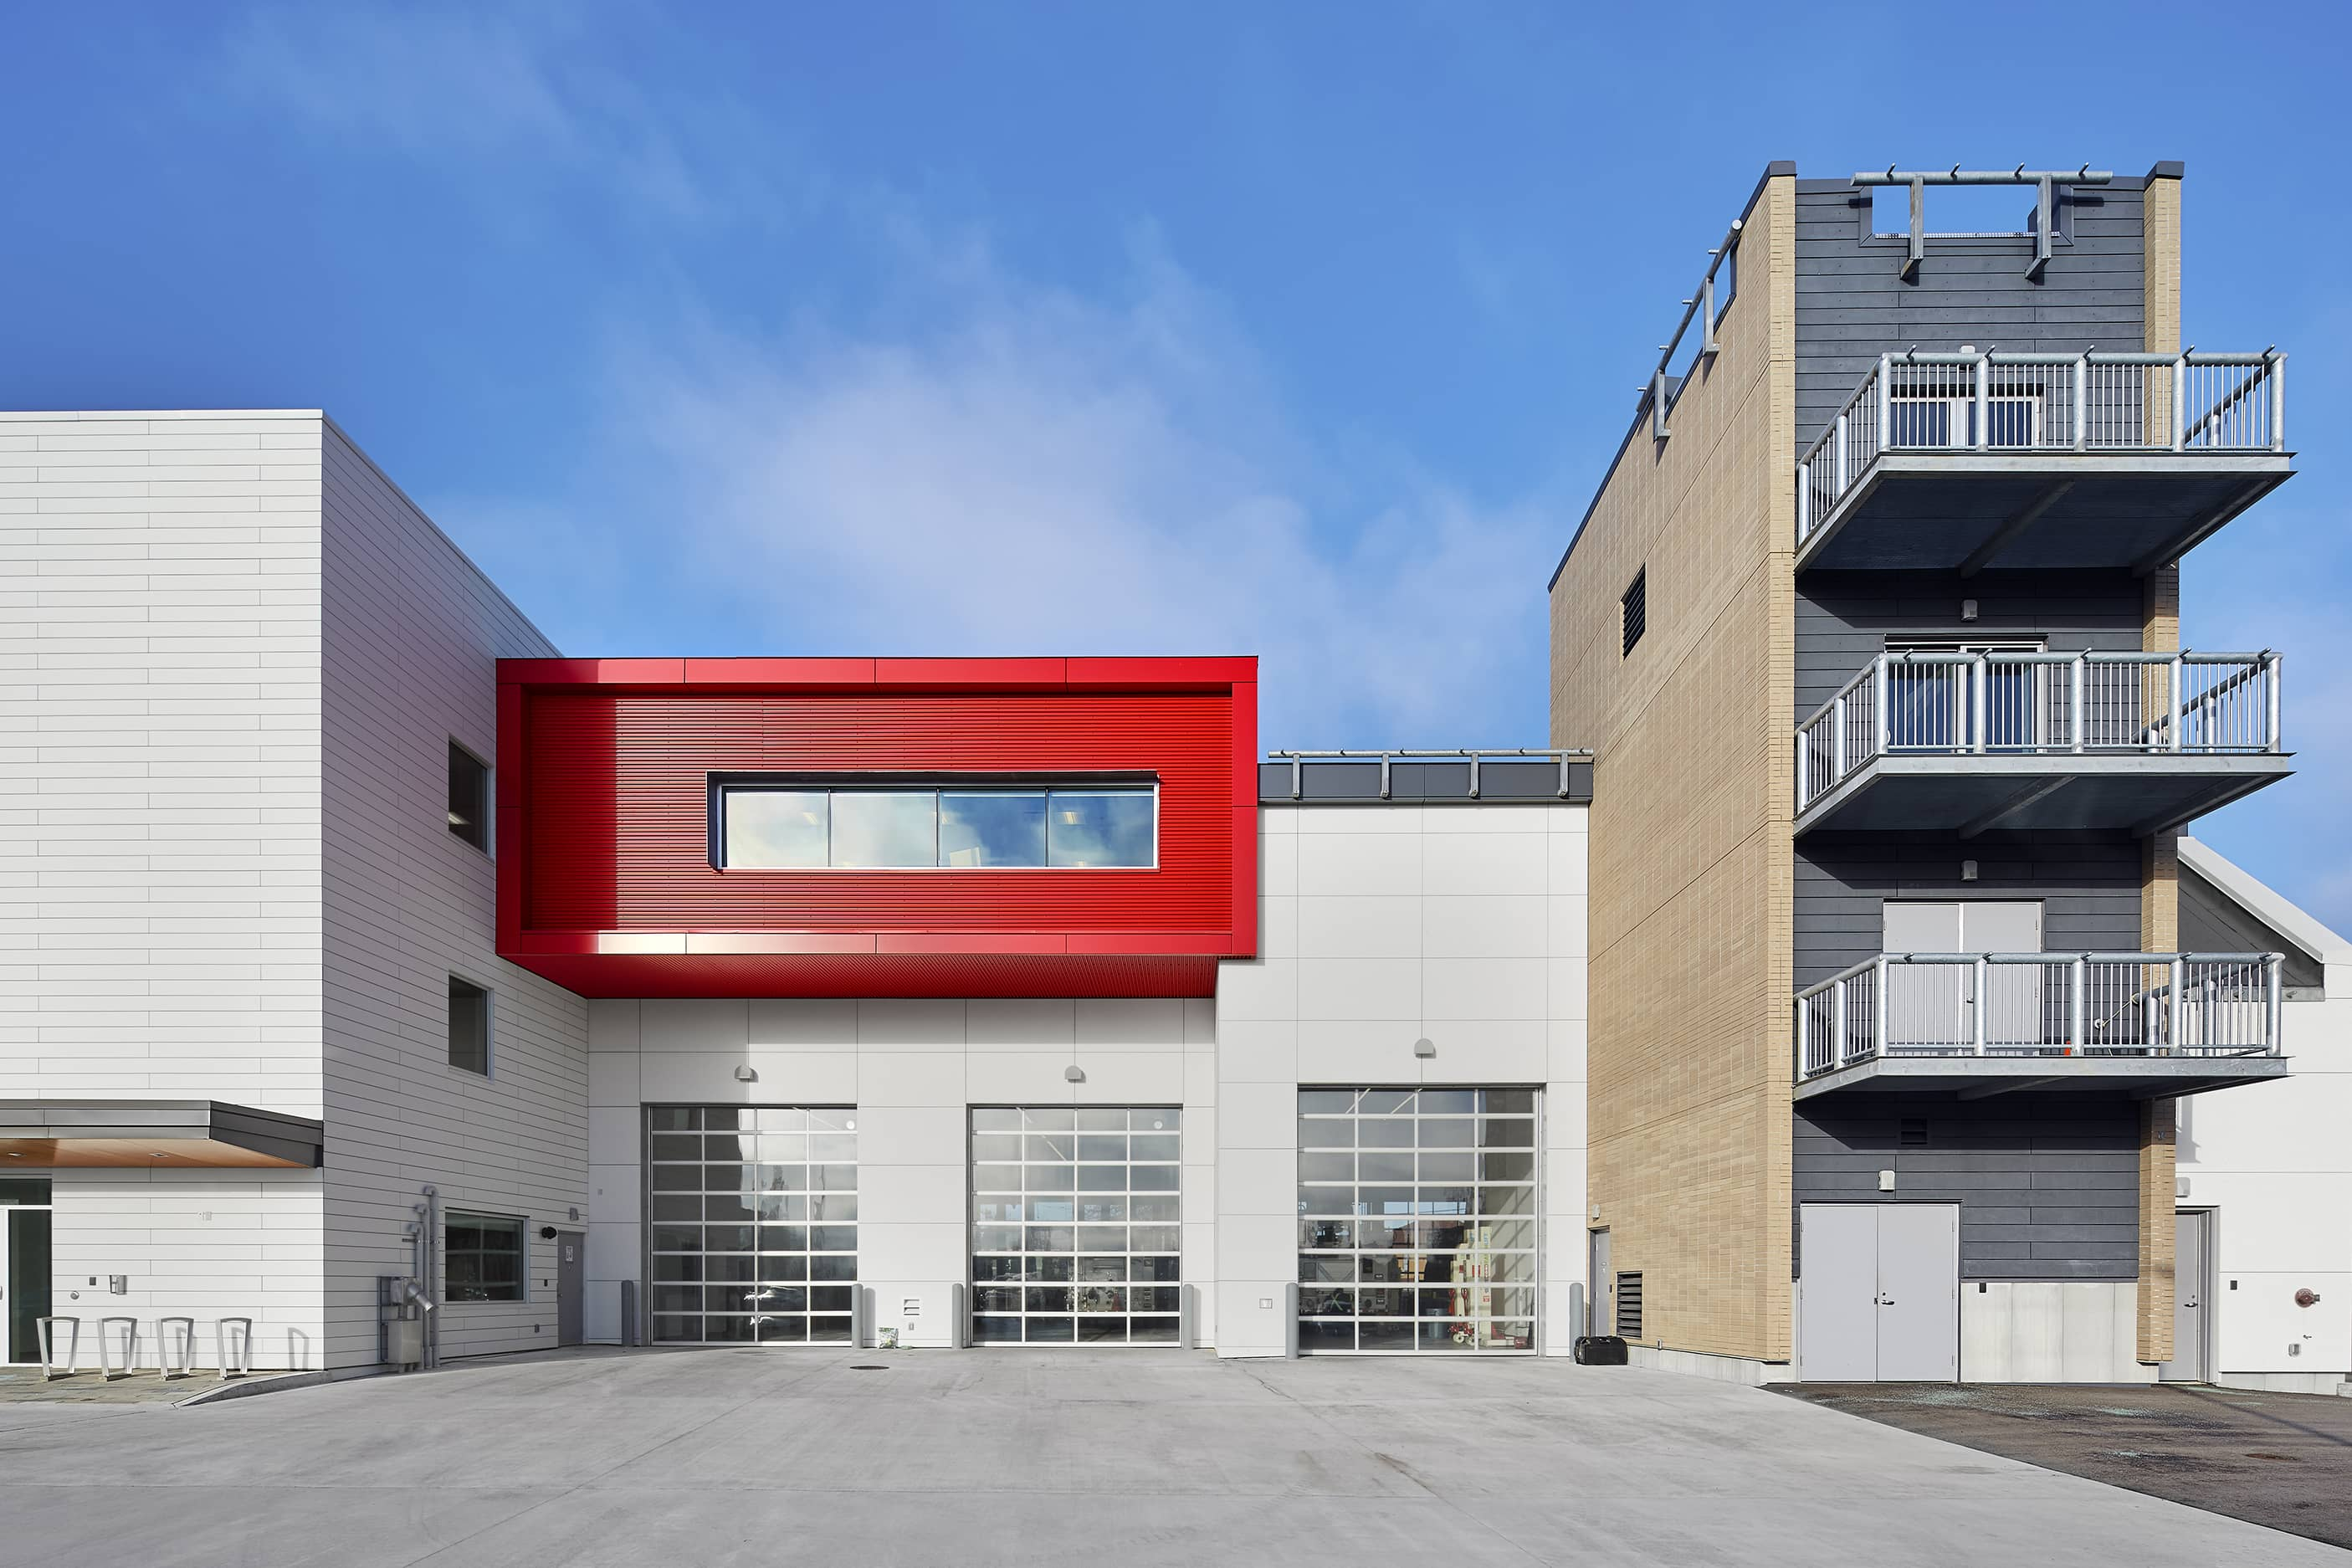 bbp cambie fire hall no. 3 & ambulance station exterior bays